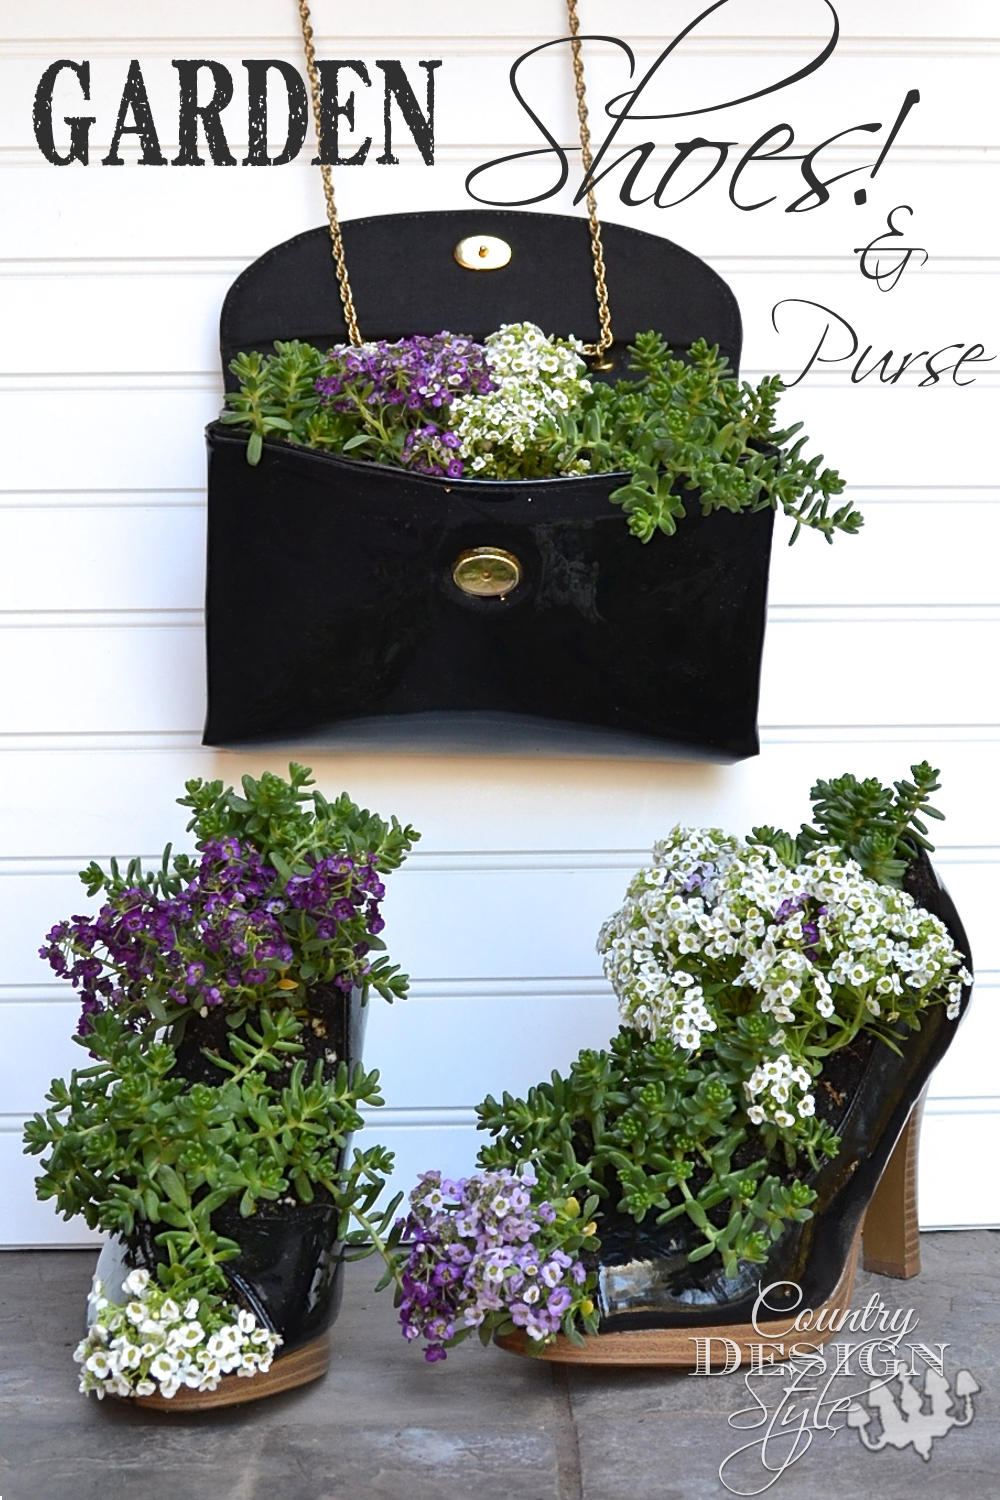 Garden high heel shoes and purse!  Planted and ready to grow.  Country Design Style